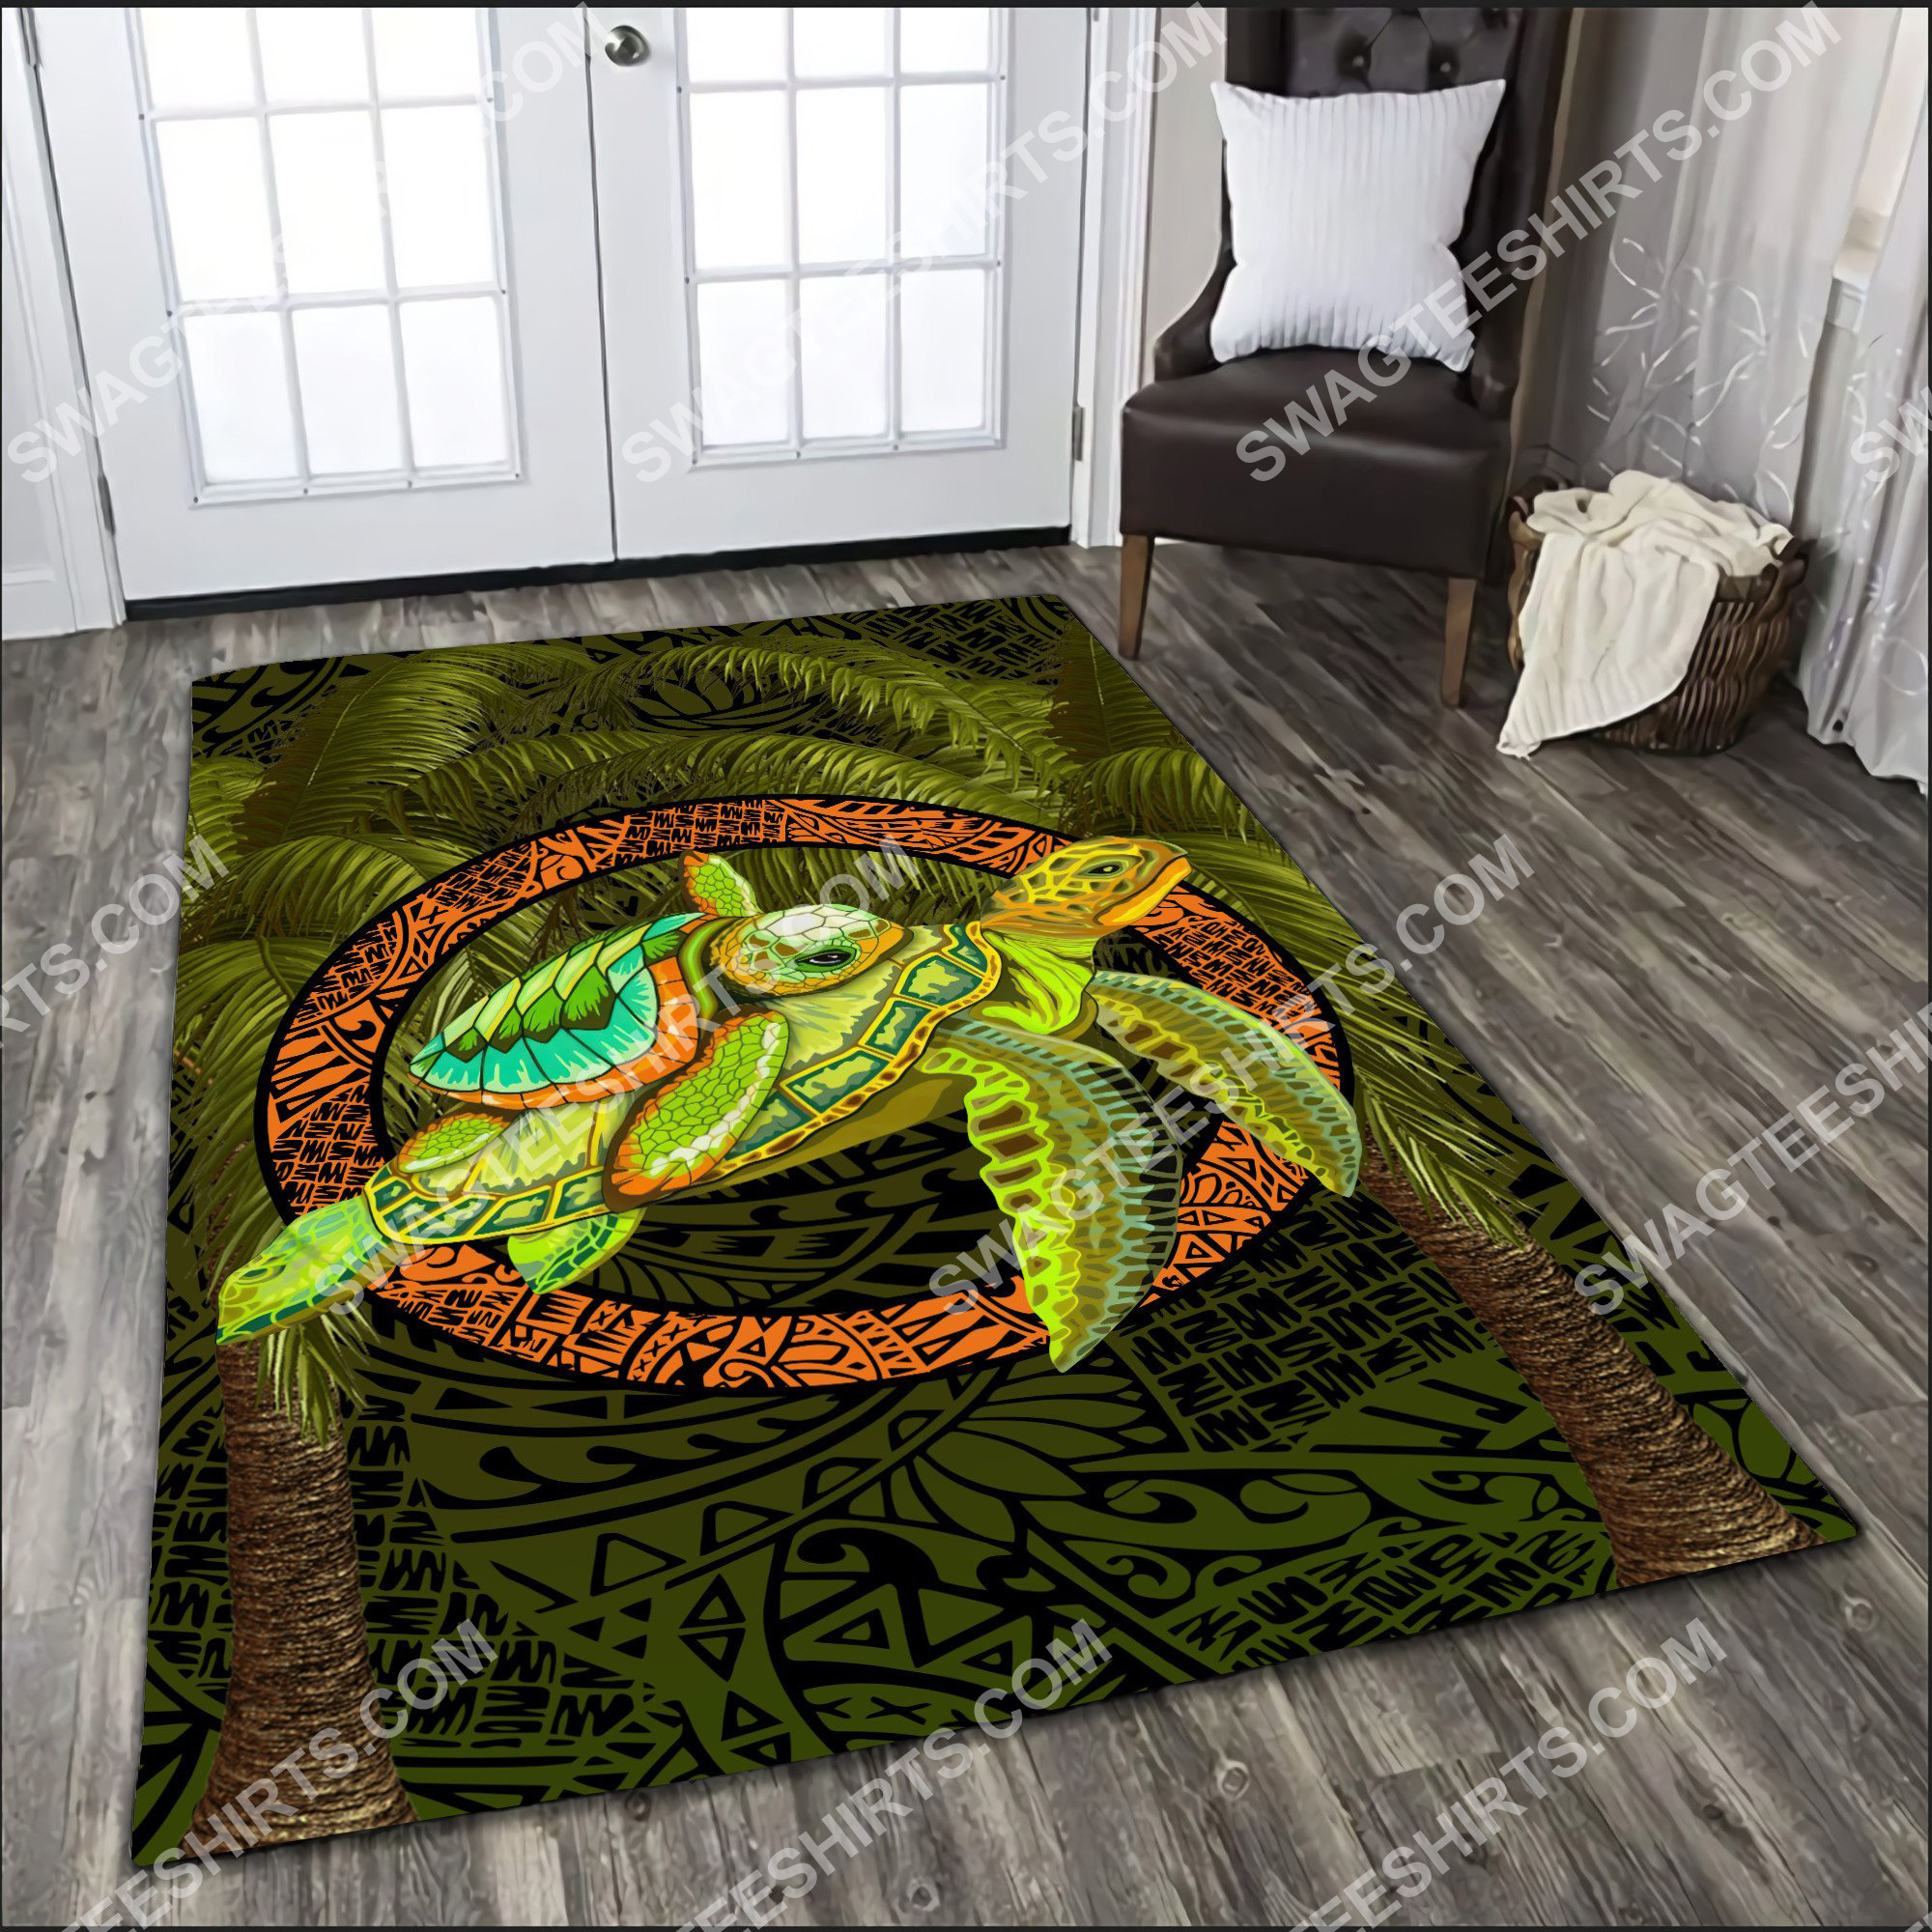 turtle palm tree art all over printed rug 3(1)